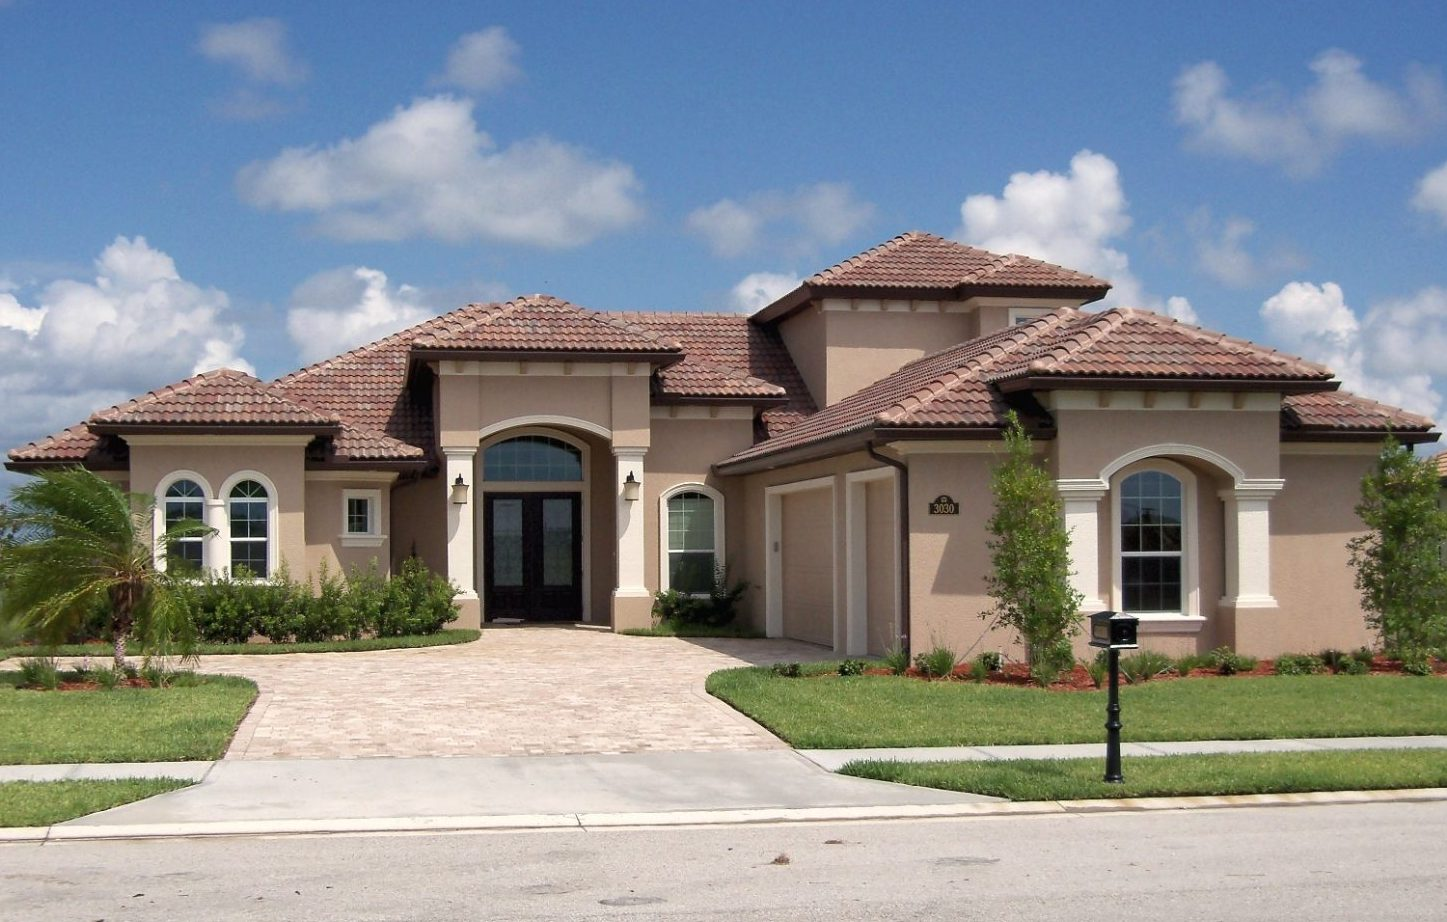 Spanish Style House Handyman Roofing Contractors